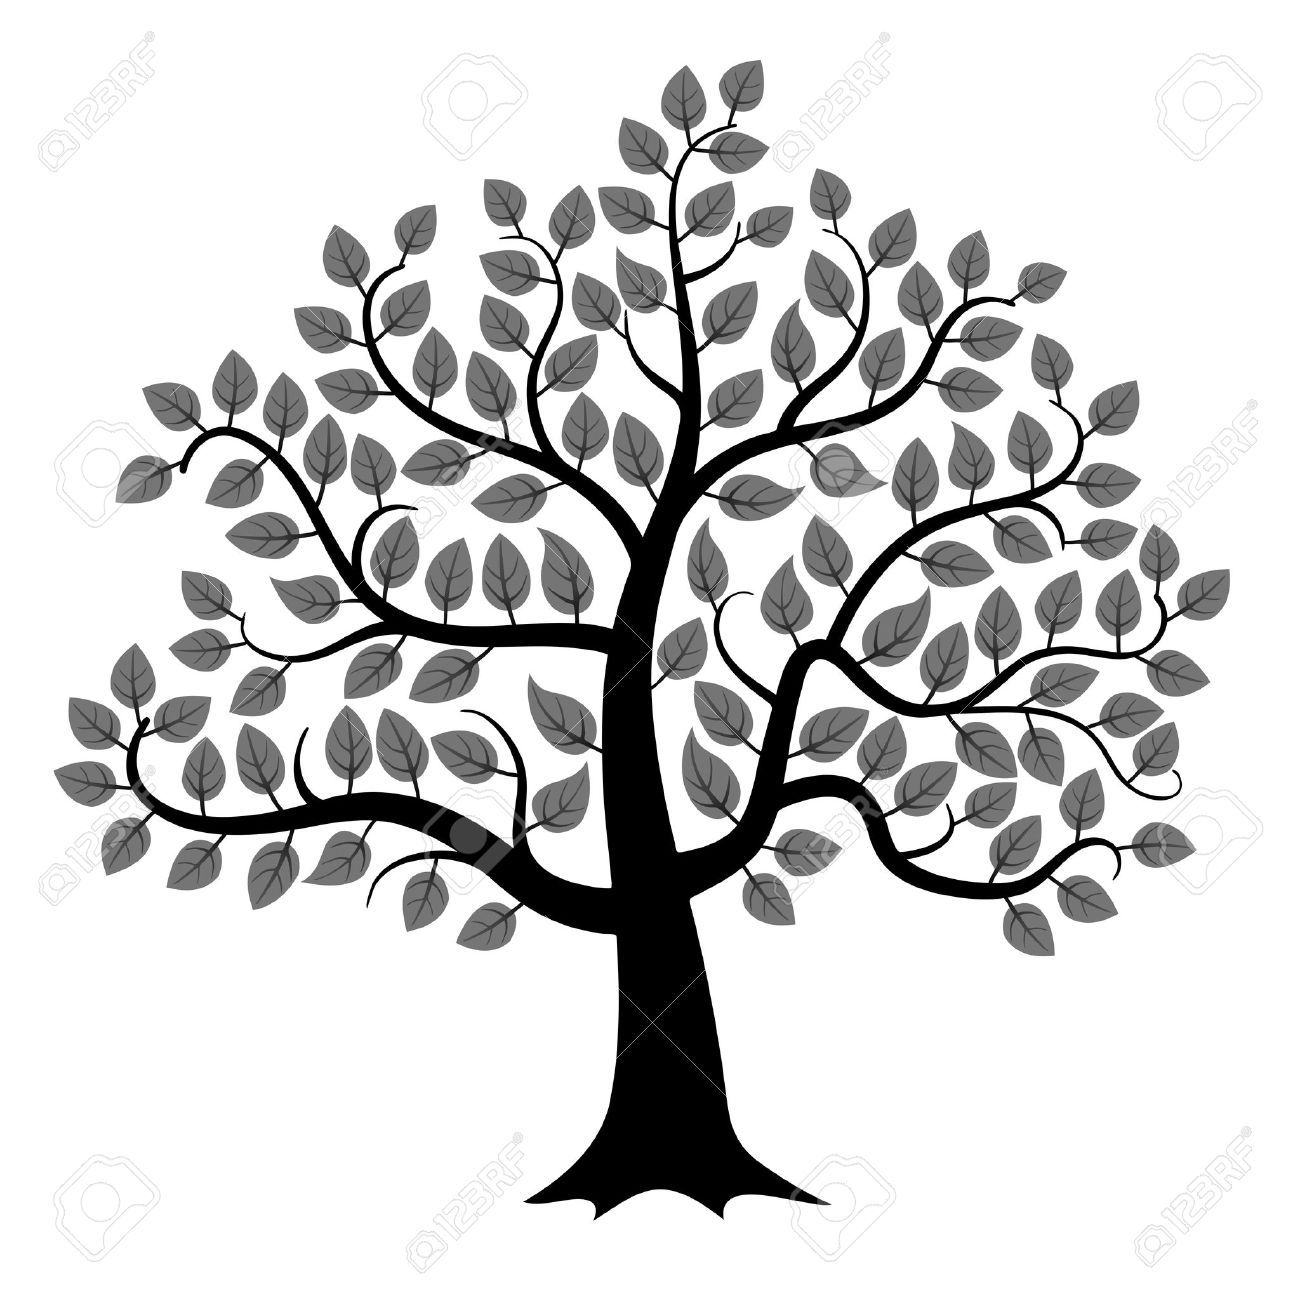 Black Tree Silhouette Isolated On White Background Vector Illustration Royalty Free Cliparts Vectors And Stock Illus Tree Of Life Art Vector Trees Tree Icon